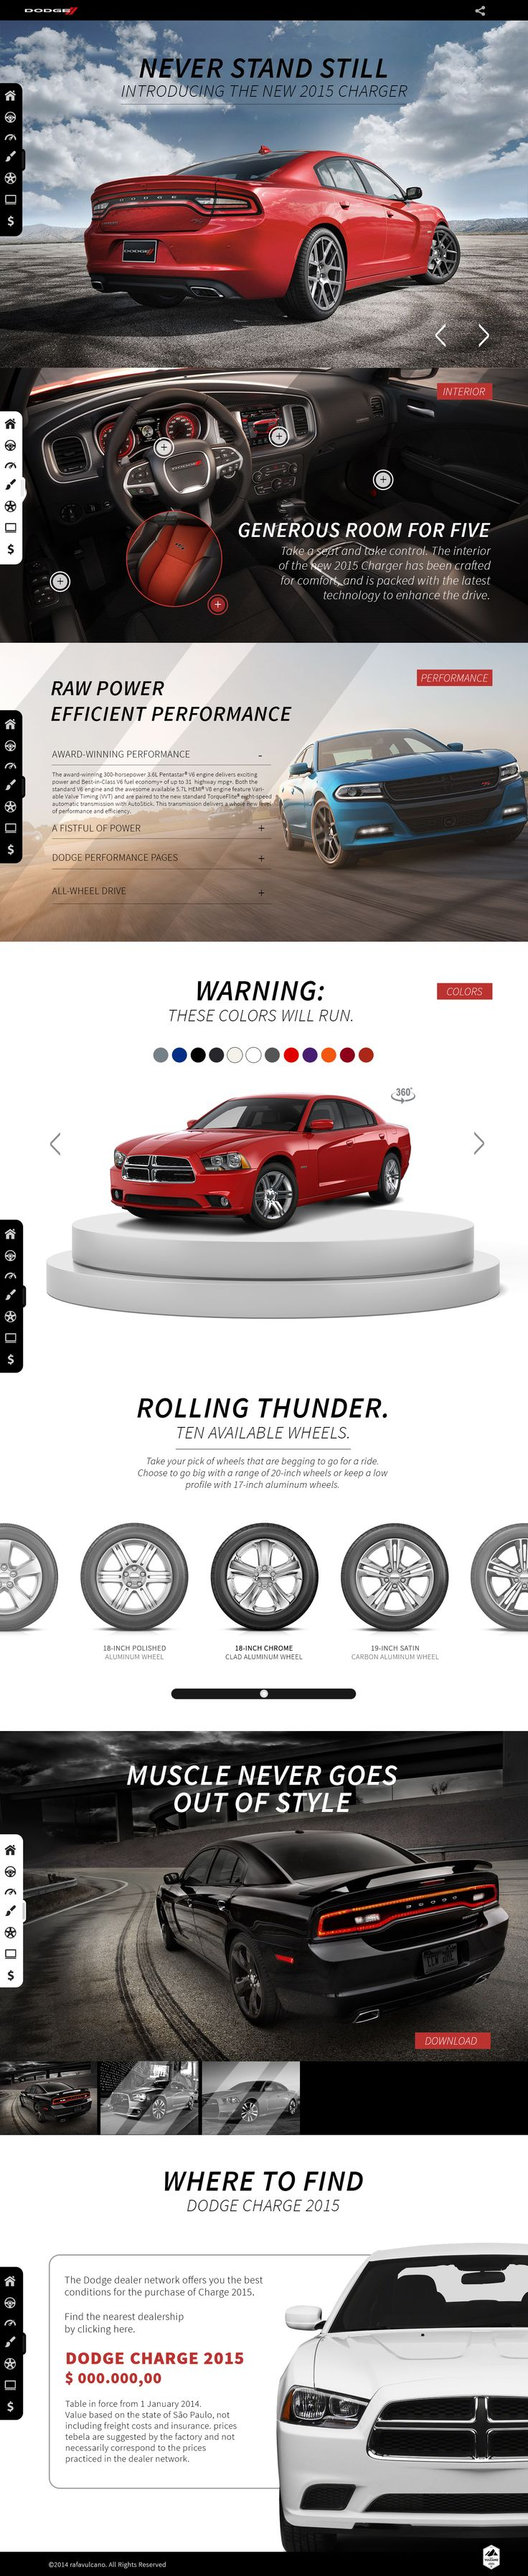 Dodge Charger 2015 https://www.behance.net/gallery/18790937/Dodge-Charger-2015